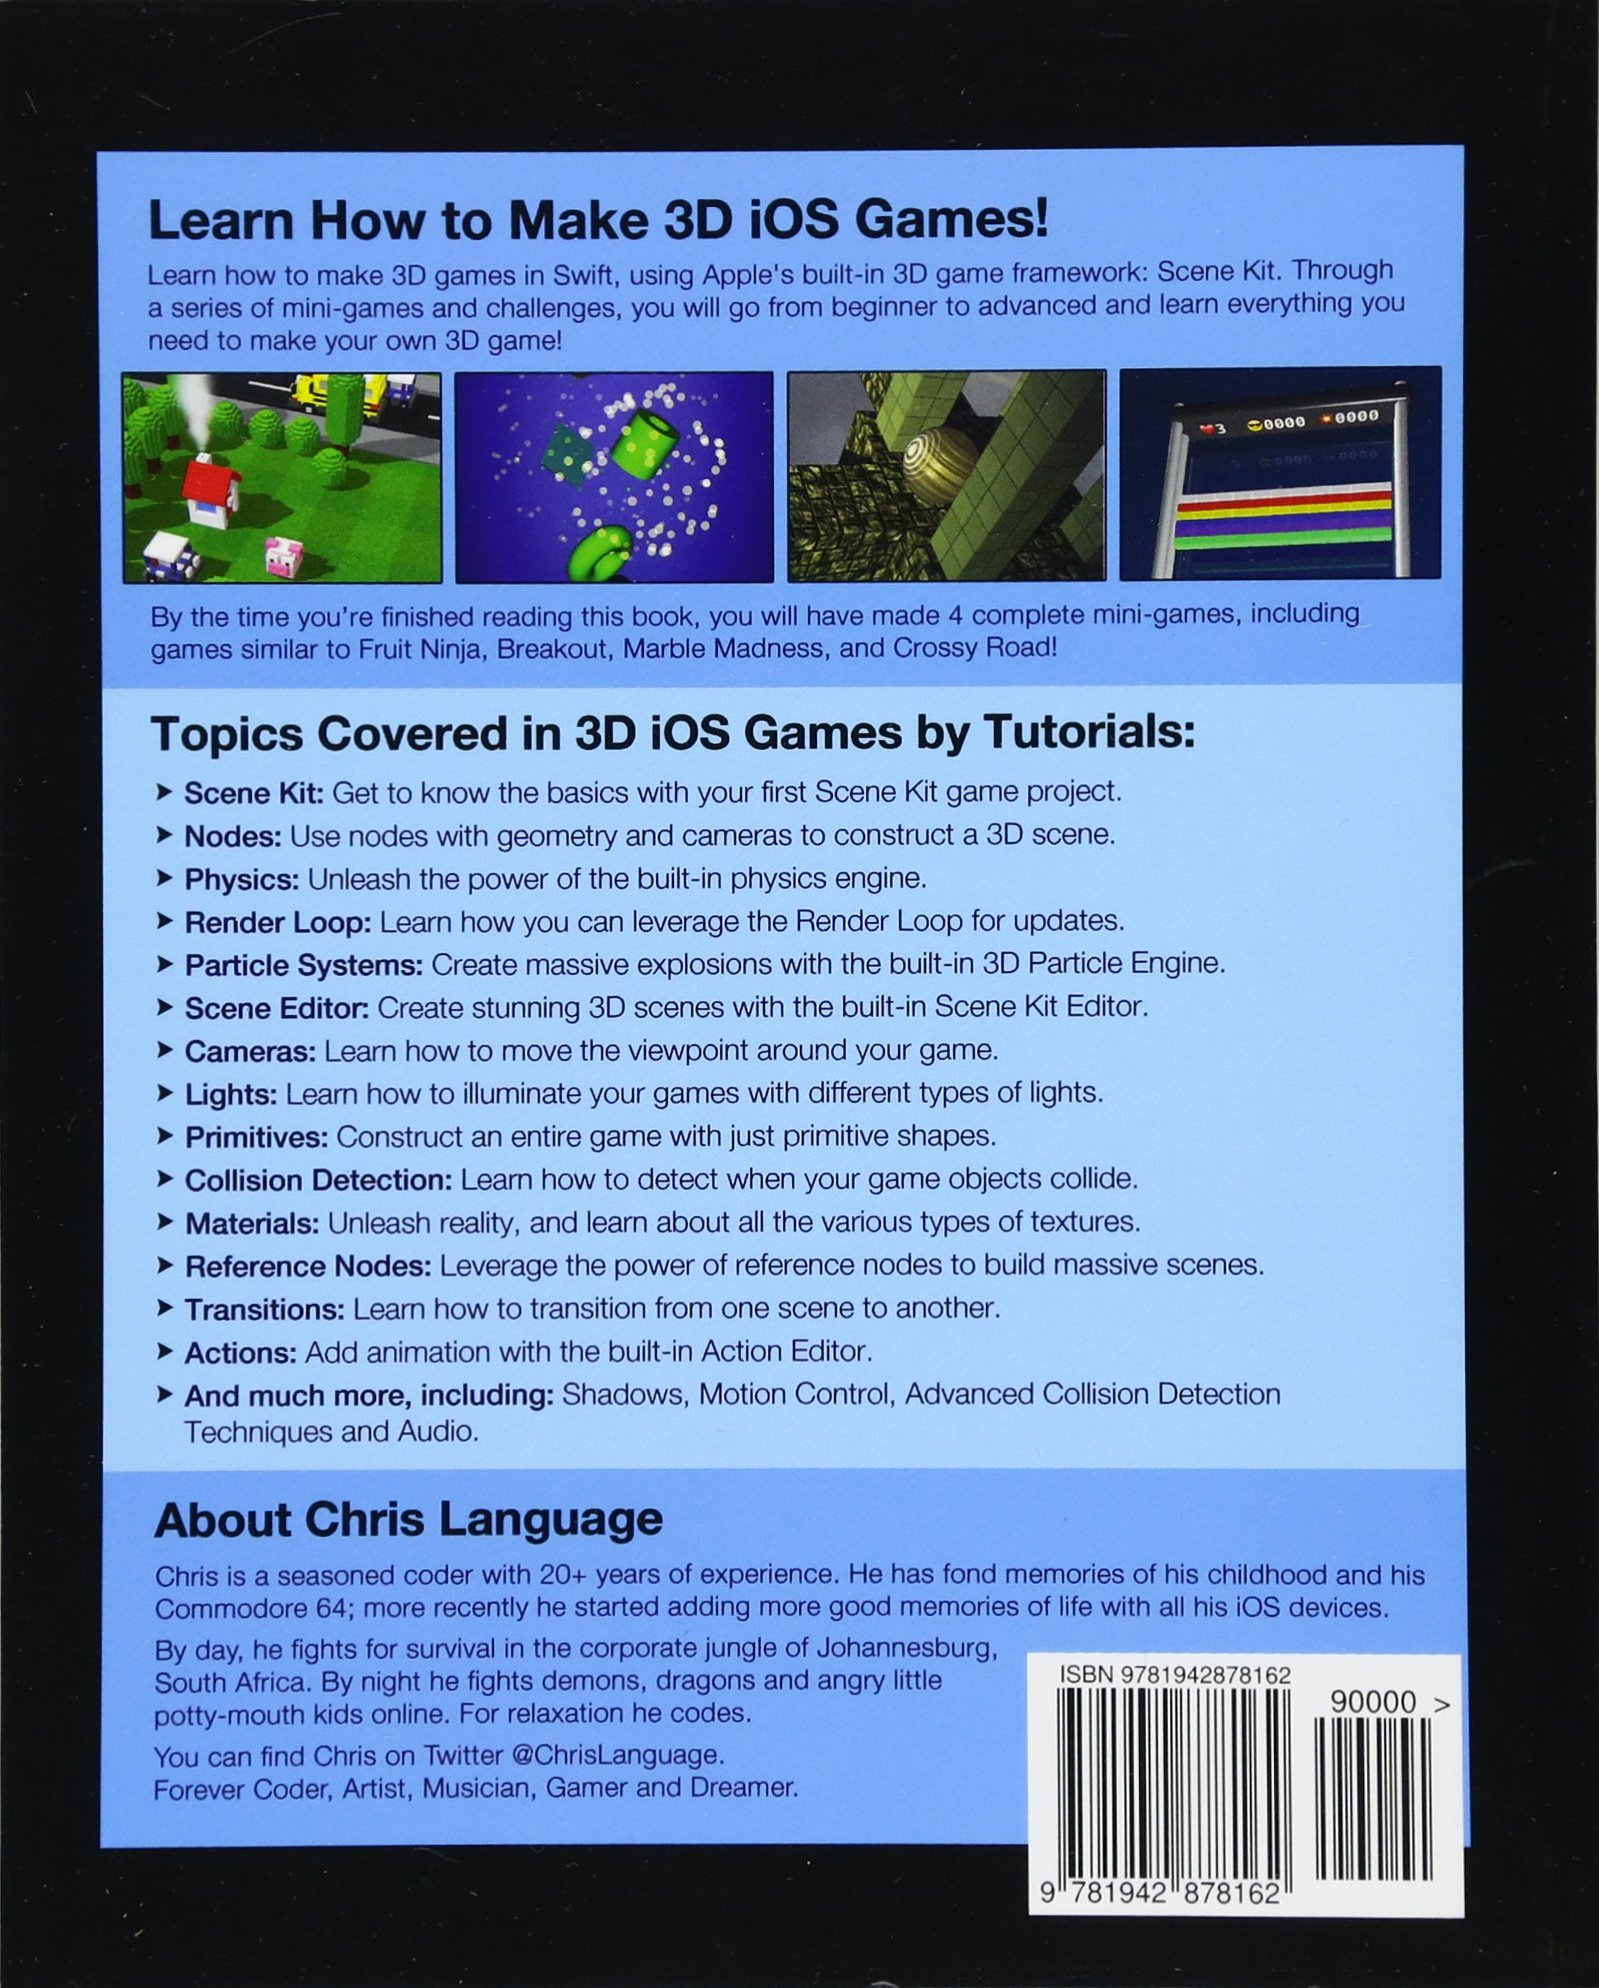 3D IOS Games by Tutorials: Beginning 3D IOS Game Development with